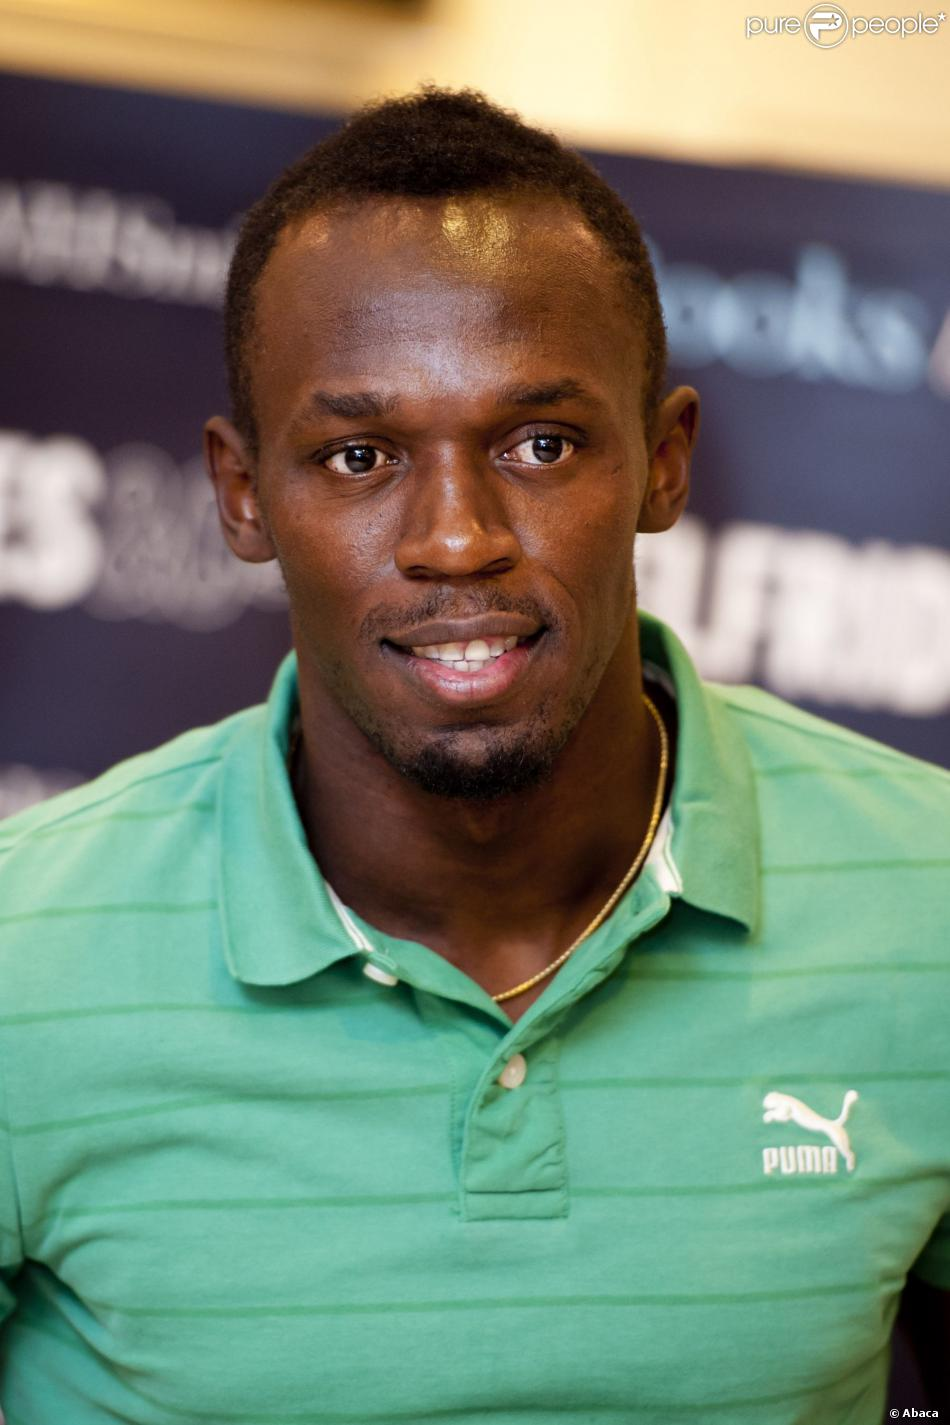 The 30-year old son of father Wellesley Bolt and mother Jennifer Bolt, 196 cm tall Usain Bolt in 2017 photo